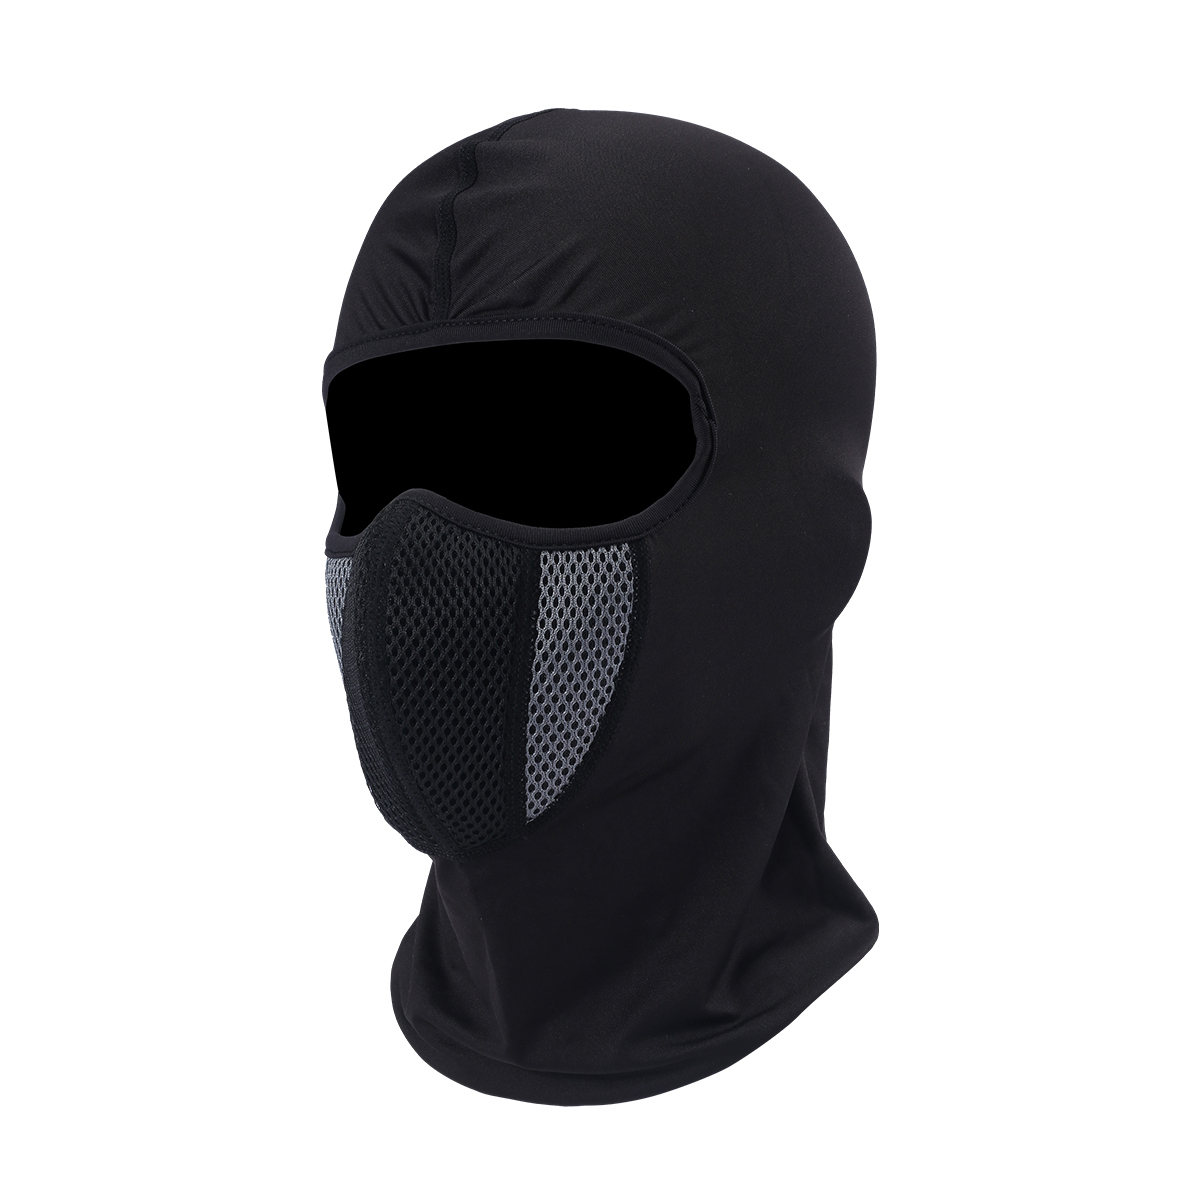 HEROBIKER Balaclava Motorcycle Face Mask Moto Helmet Bandana Hood Ski Neck Full Face Mask Windproof Dustproof Face Shield